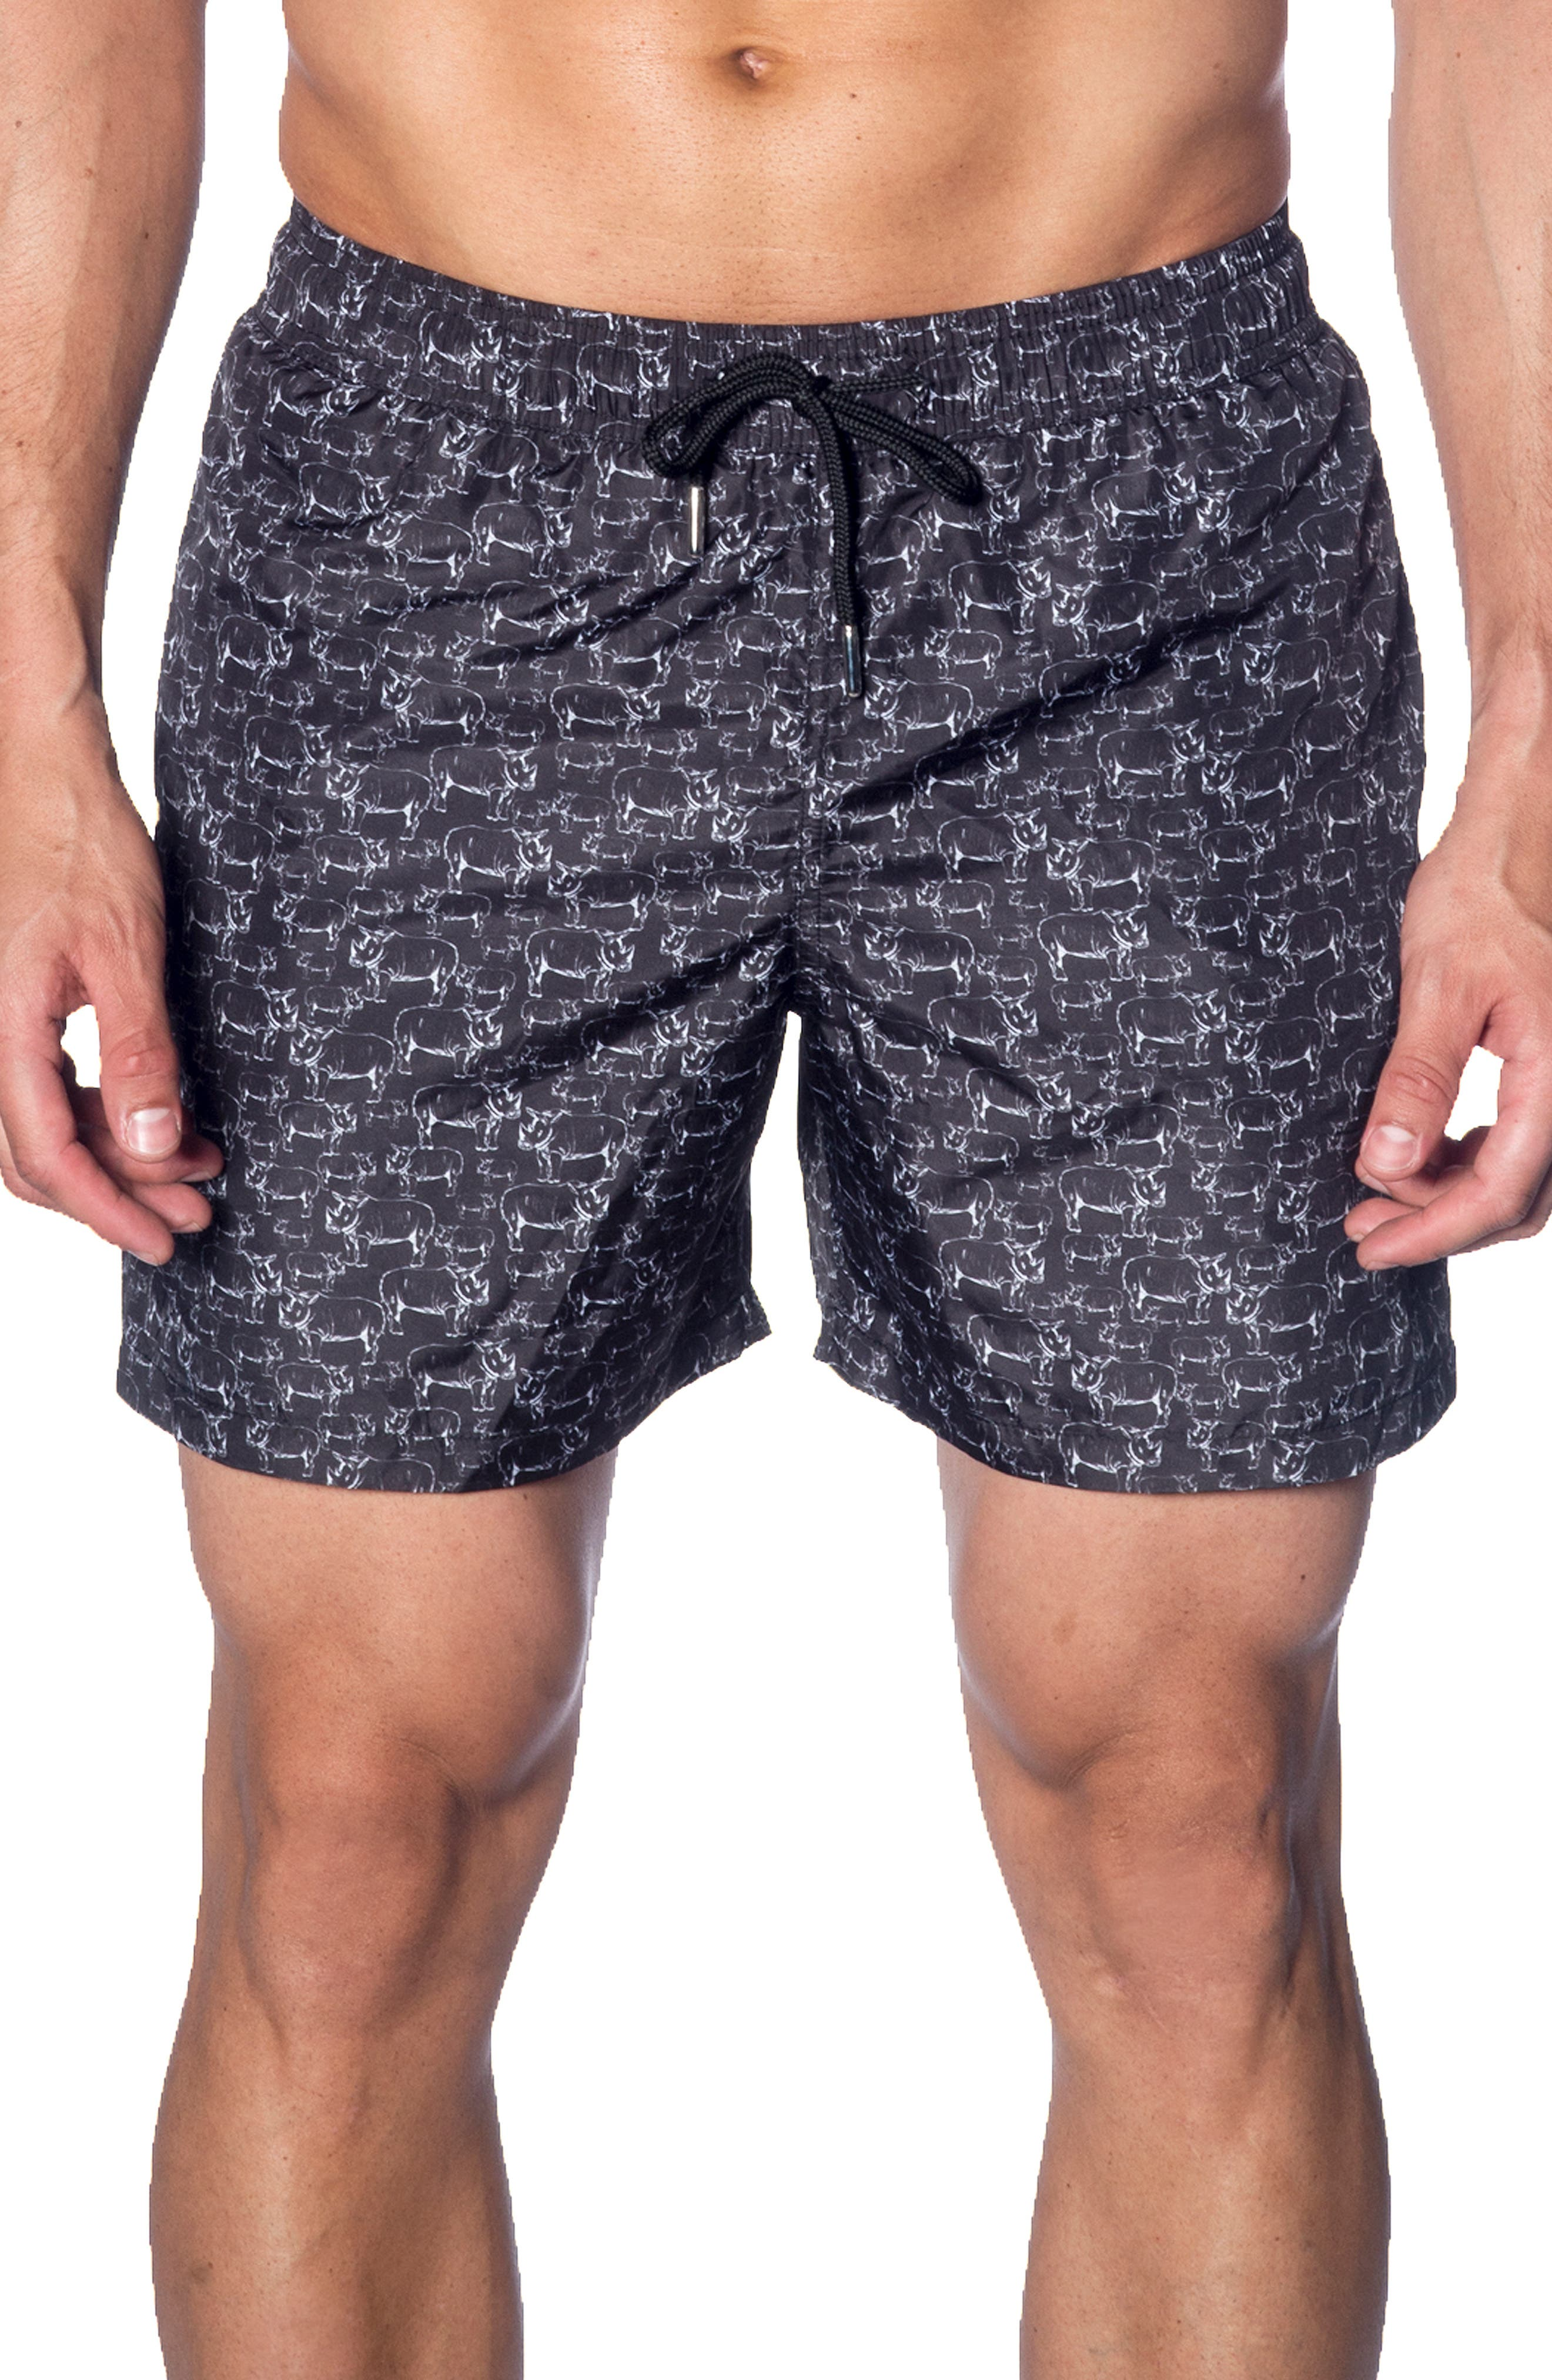 JARED LANG Swim Trunks in Black Rhinos